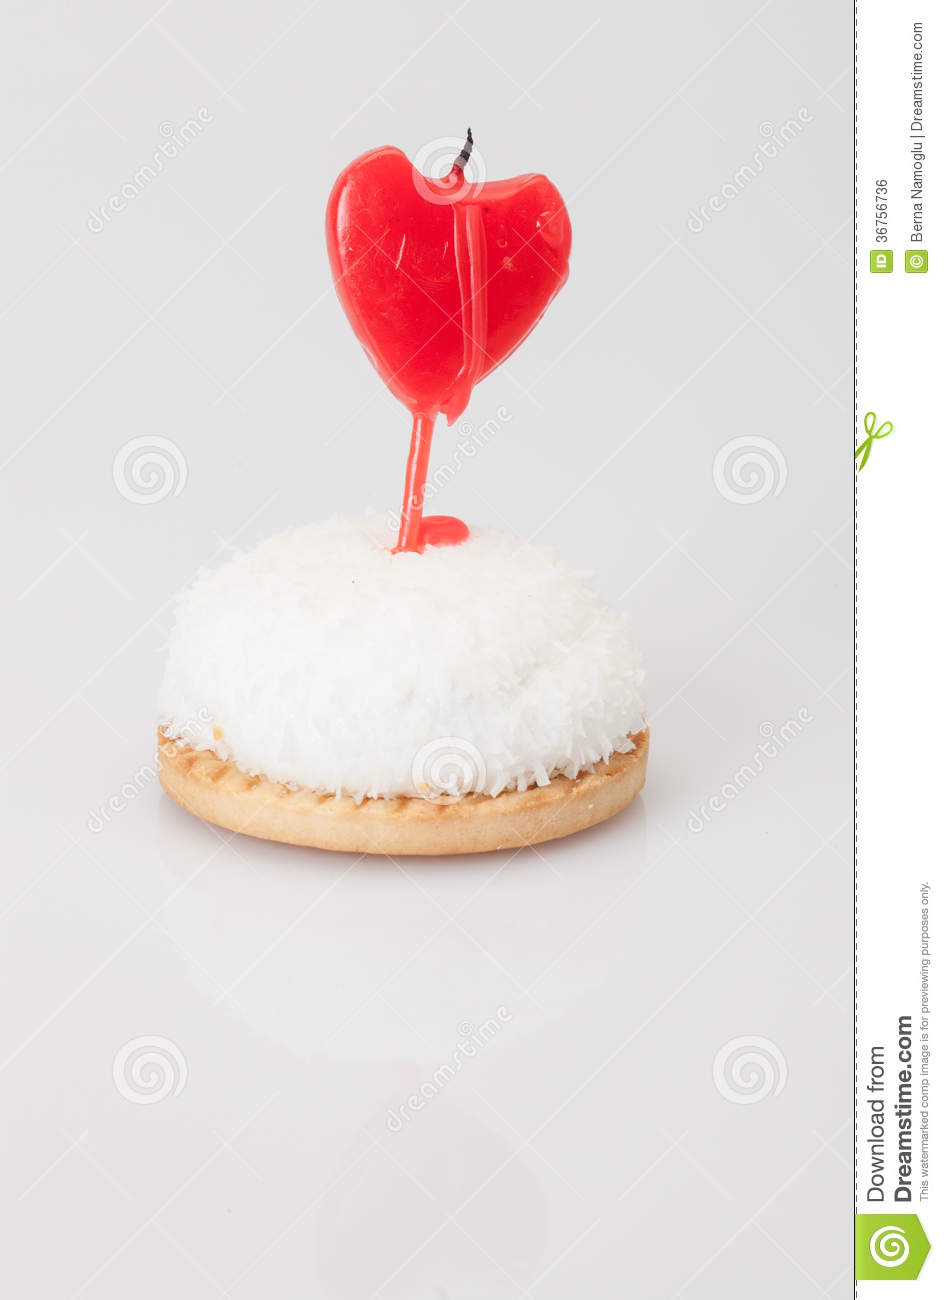 Heart Shaped Cake Stock Photos : Birthday Cake With Heart Shaped Candle Stock Photo - Image ...